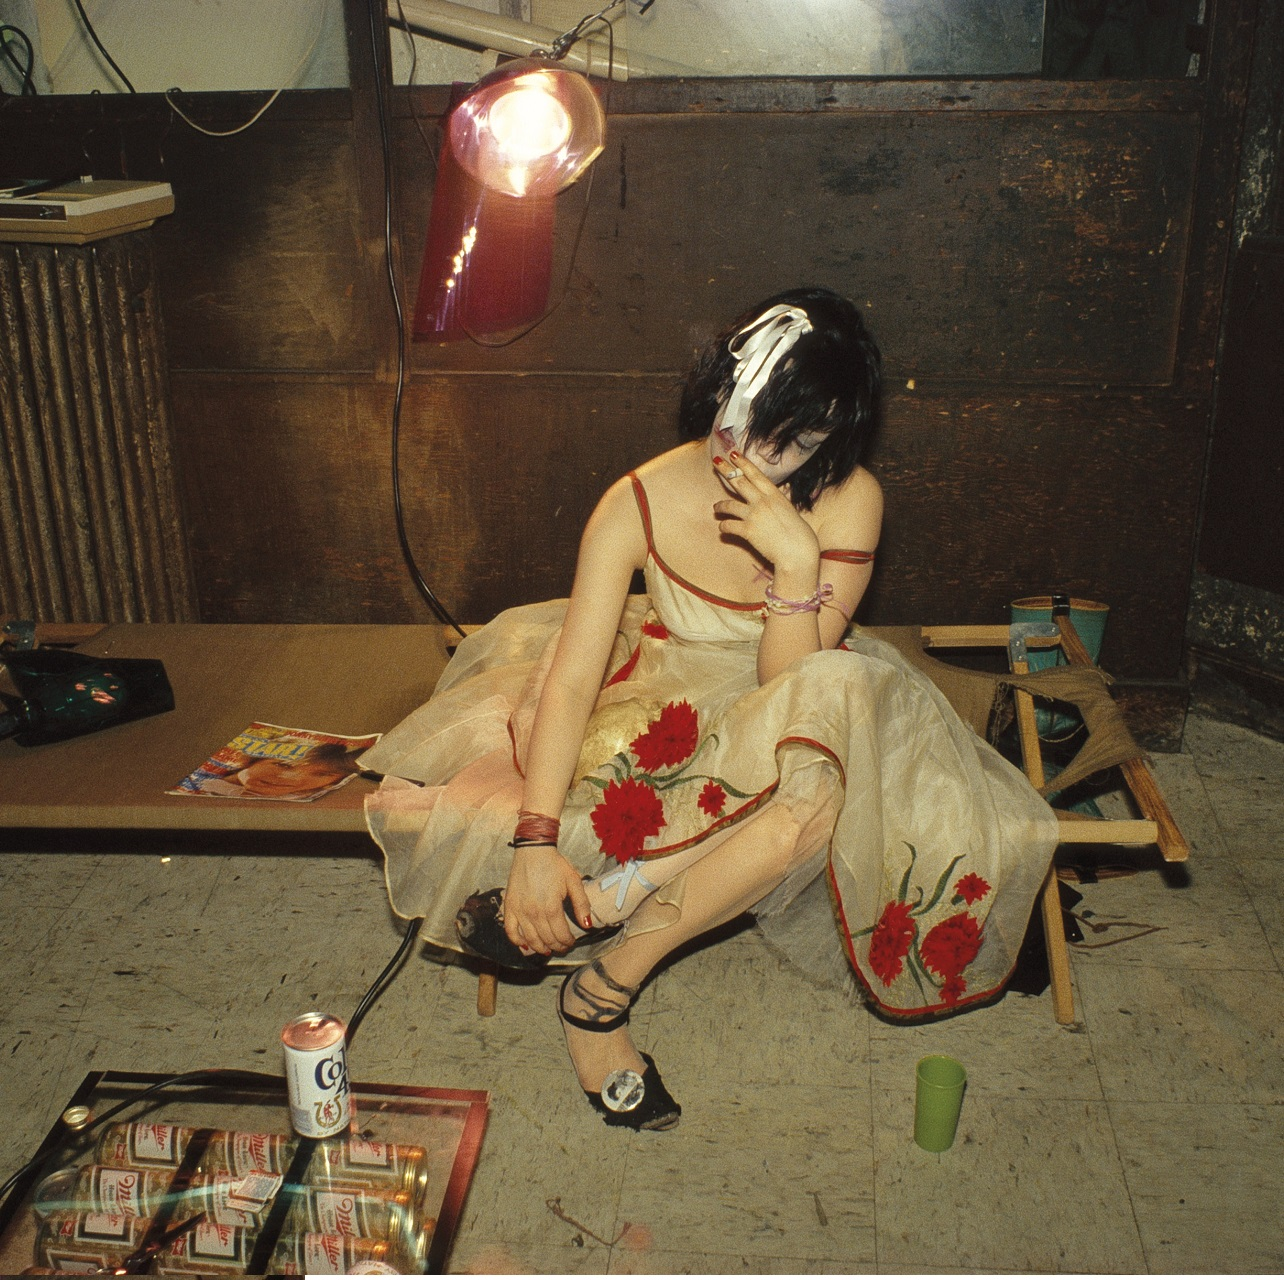 Mufoco e Triennale | Nan Goldin | The Ballad of Sexual Dependency